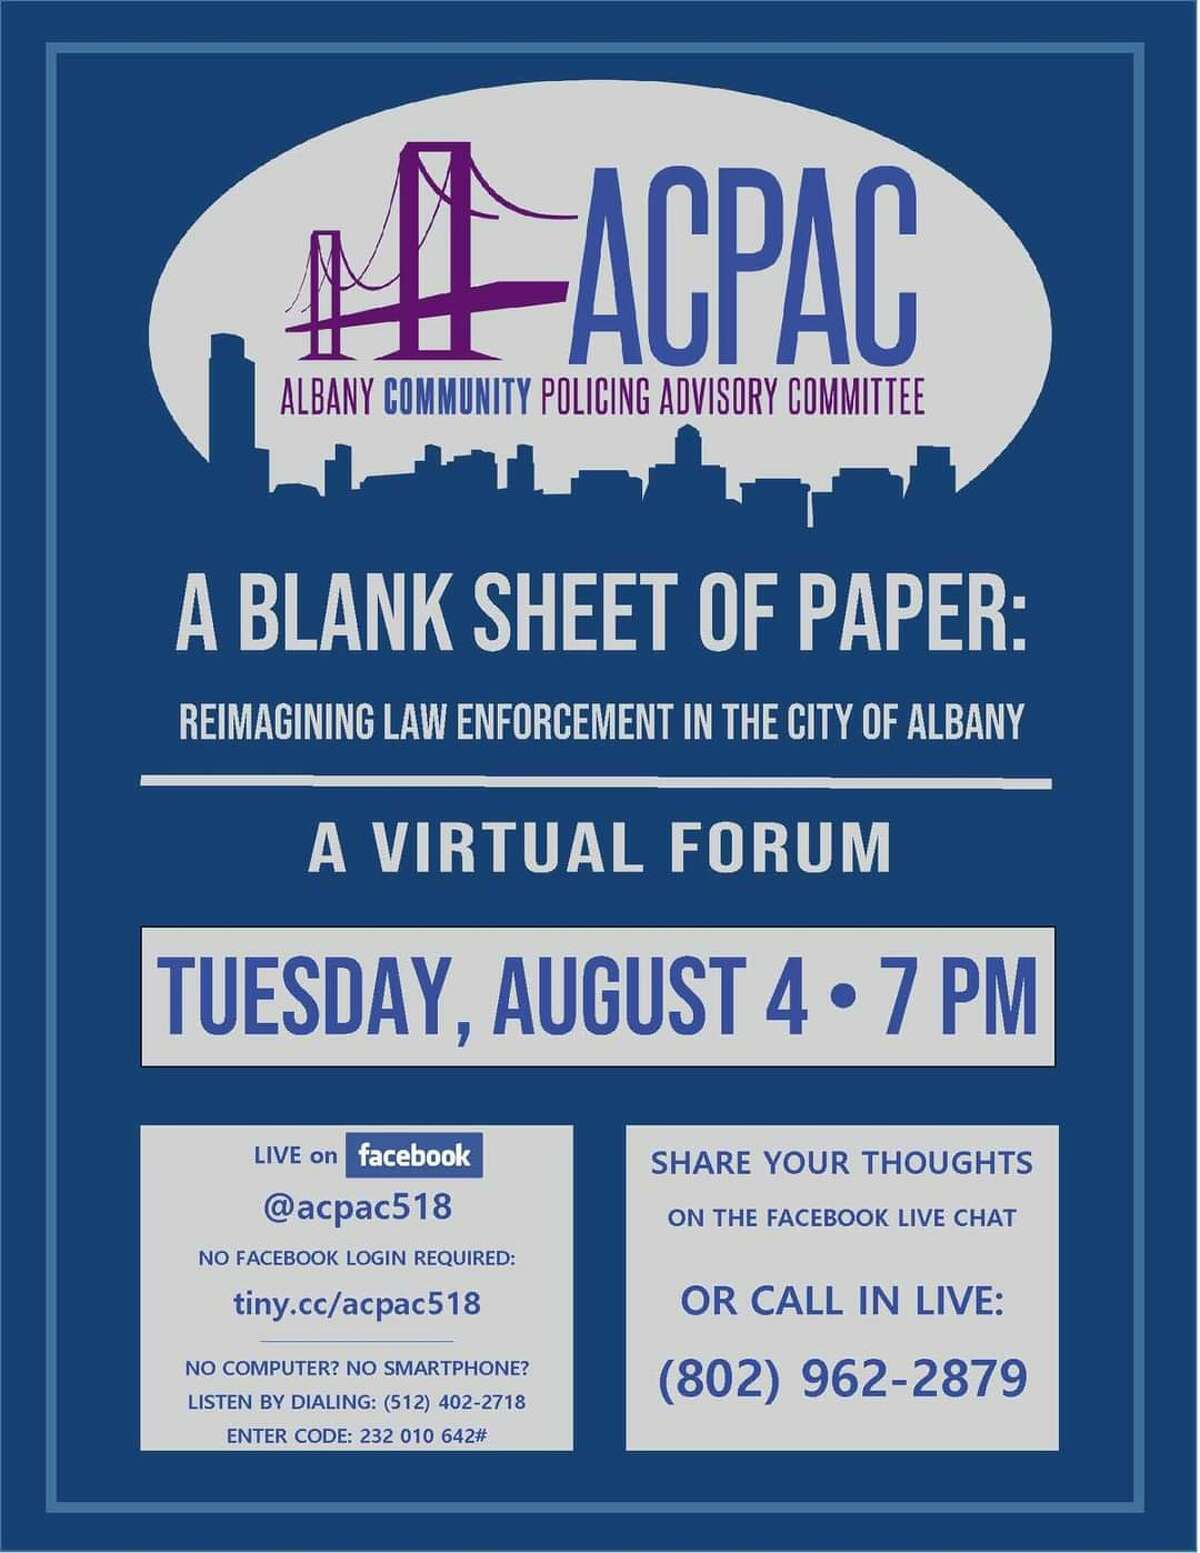 The committee will hold a virtual forum at 7 p.m. on Tuesday.